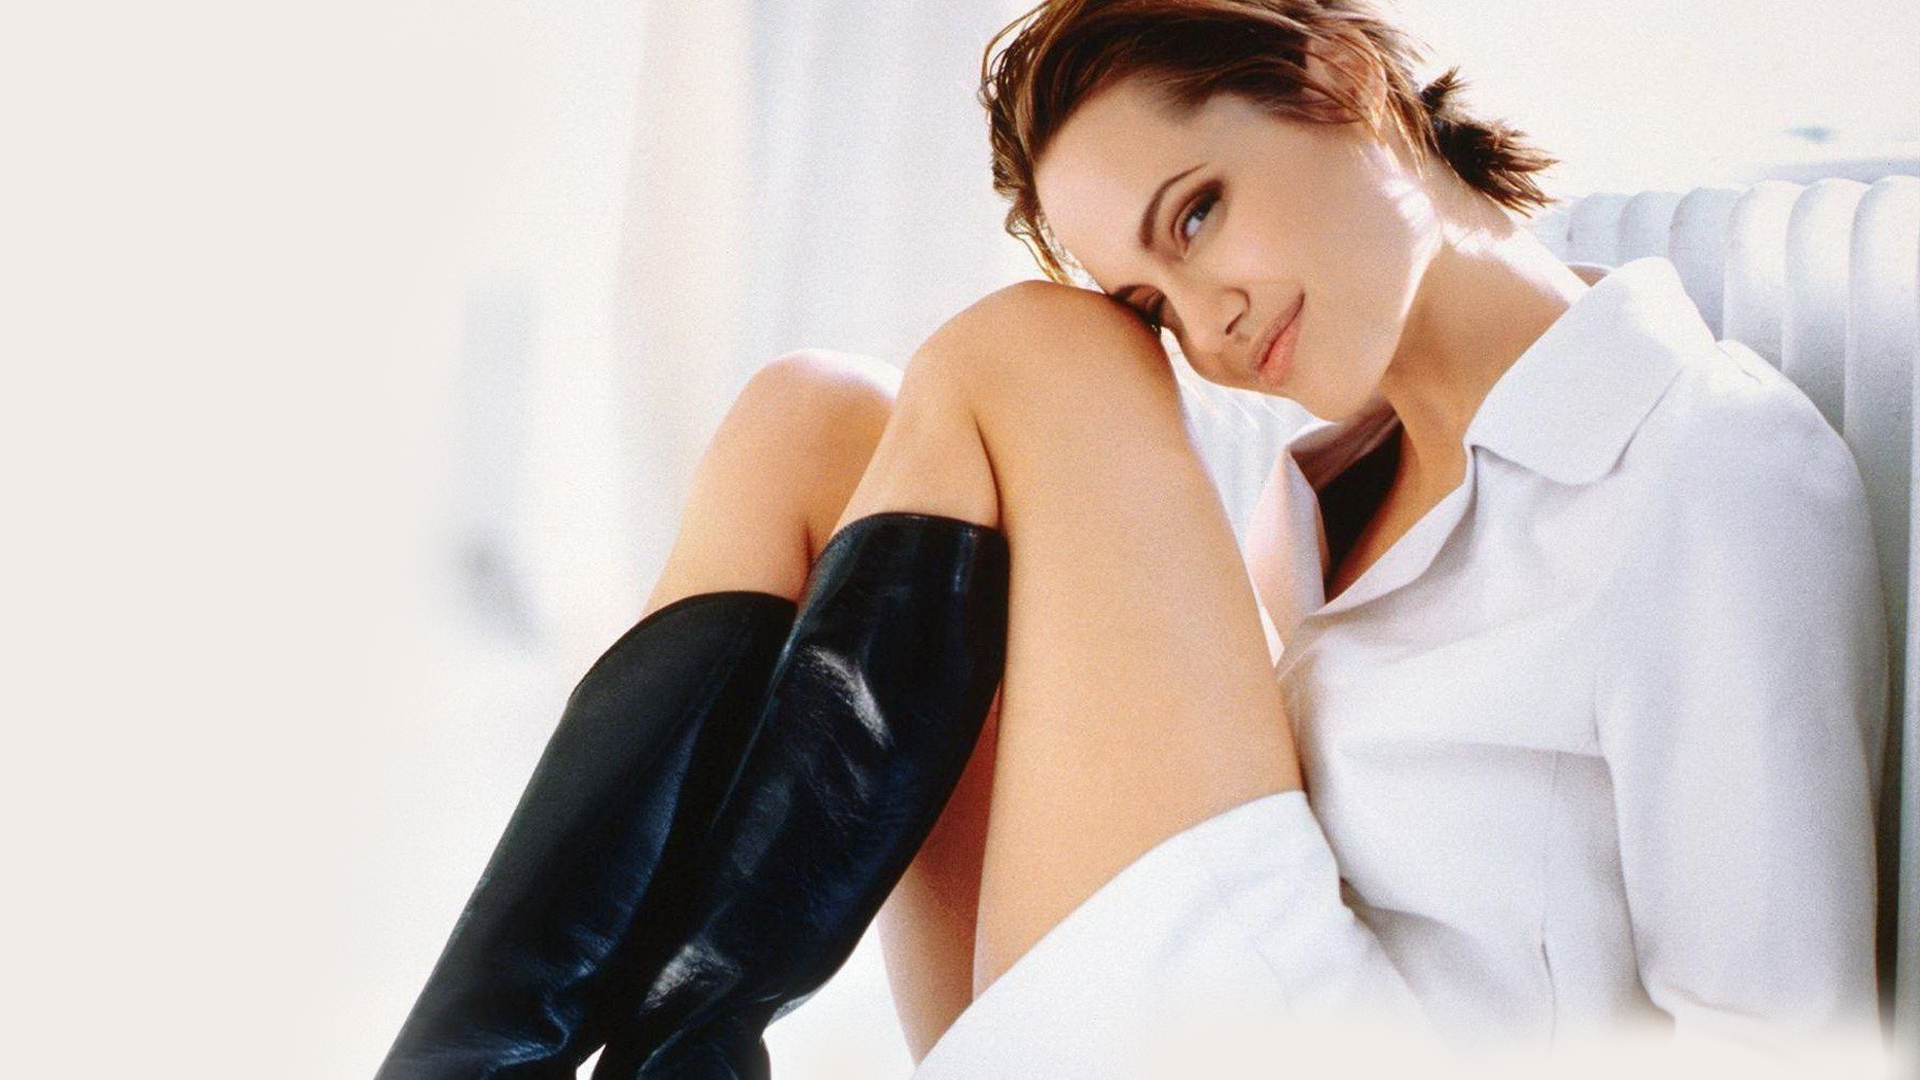 Angelina Jolie Wallpaper 1920x1080 1920x1080